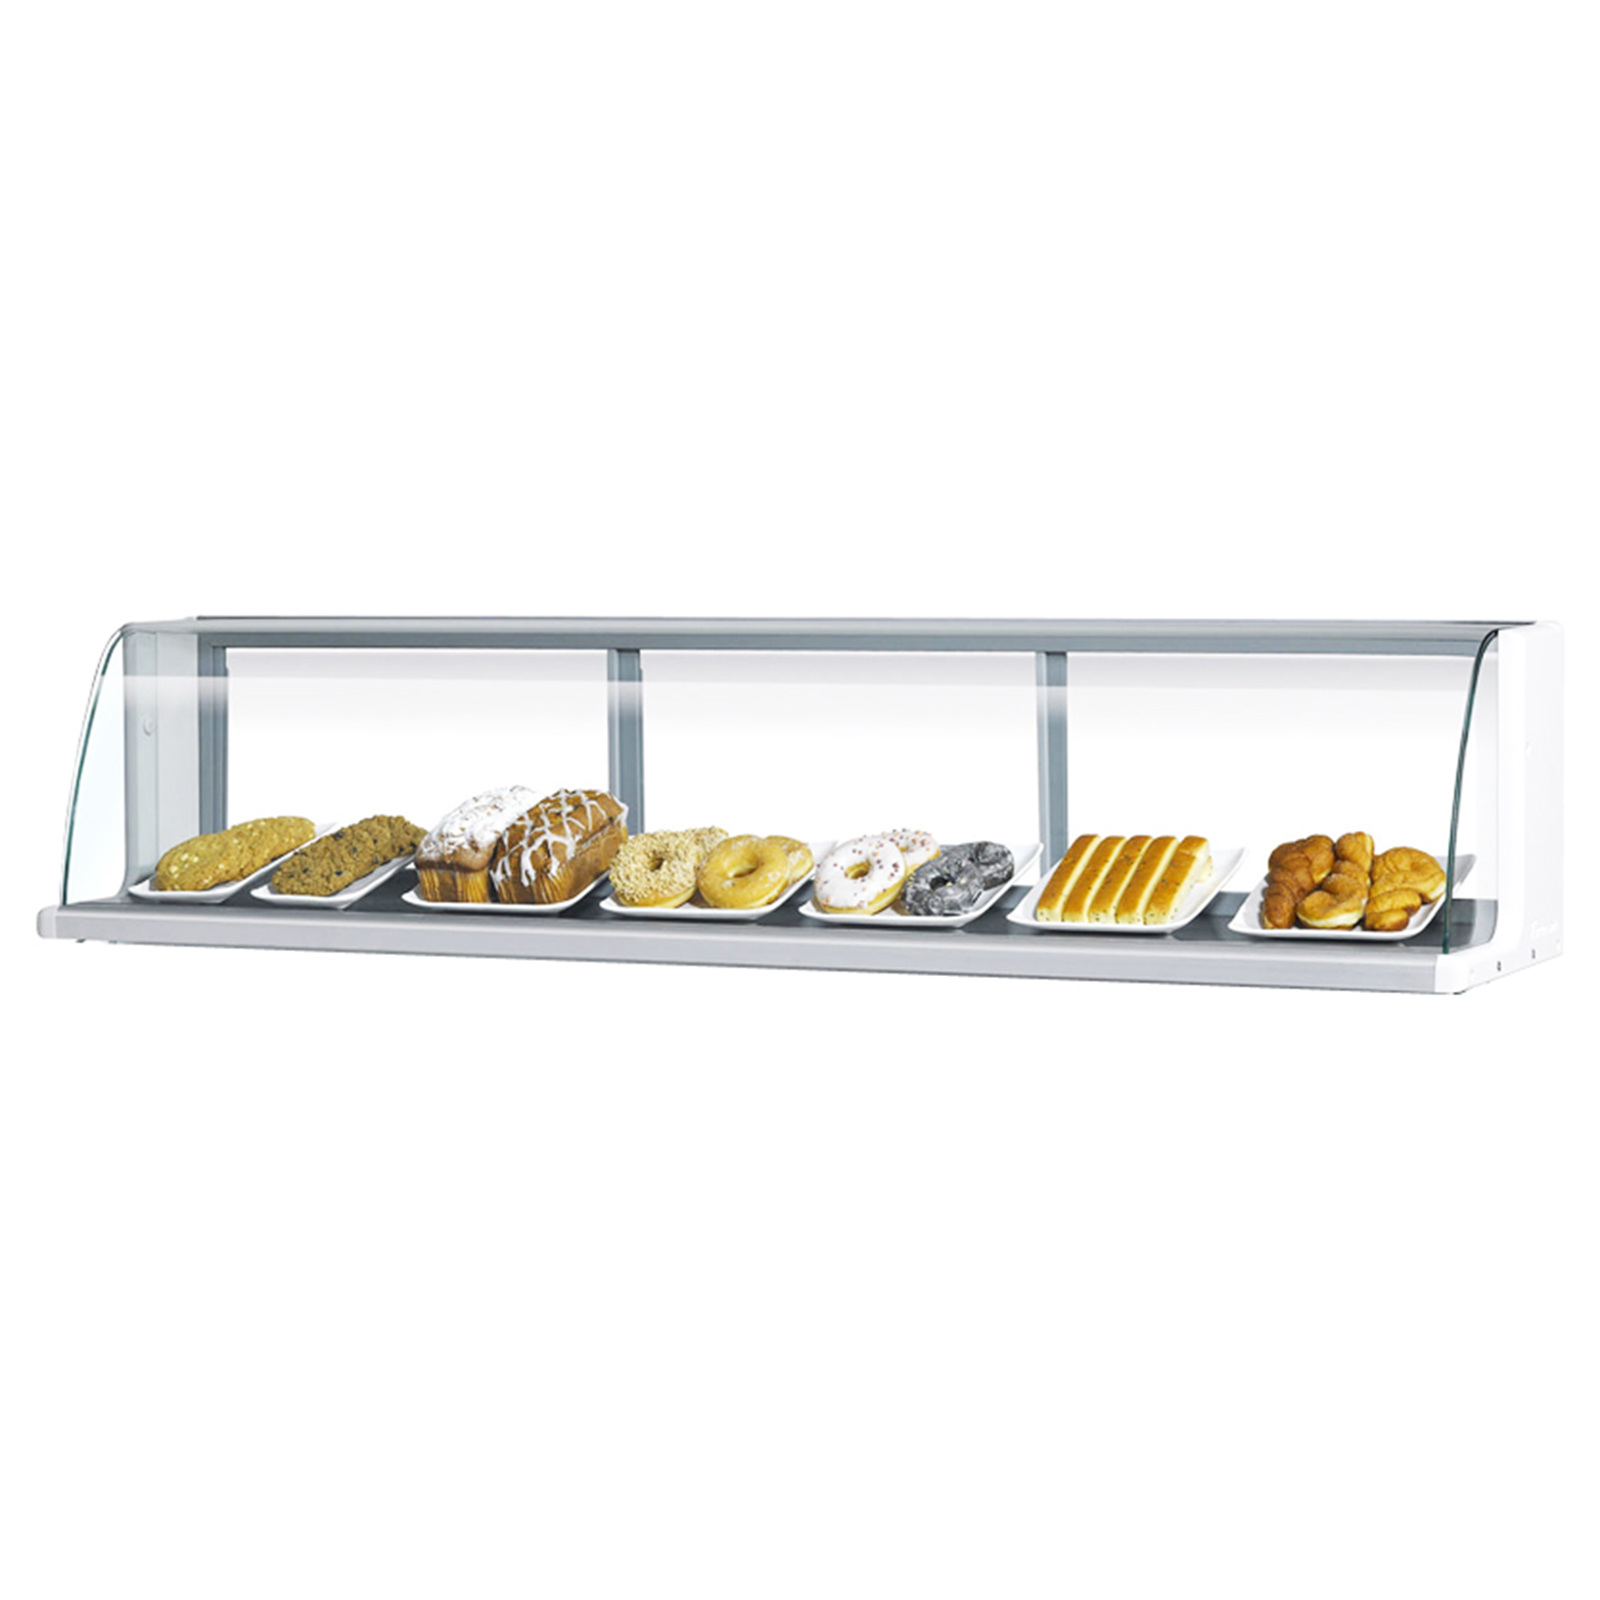 Turbo Air TOMD-40LW(B) display case, non-refrigerated countertop